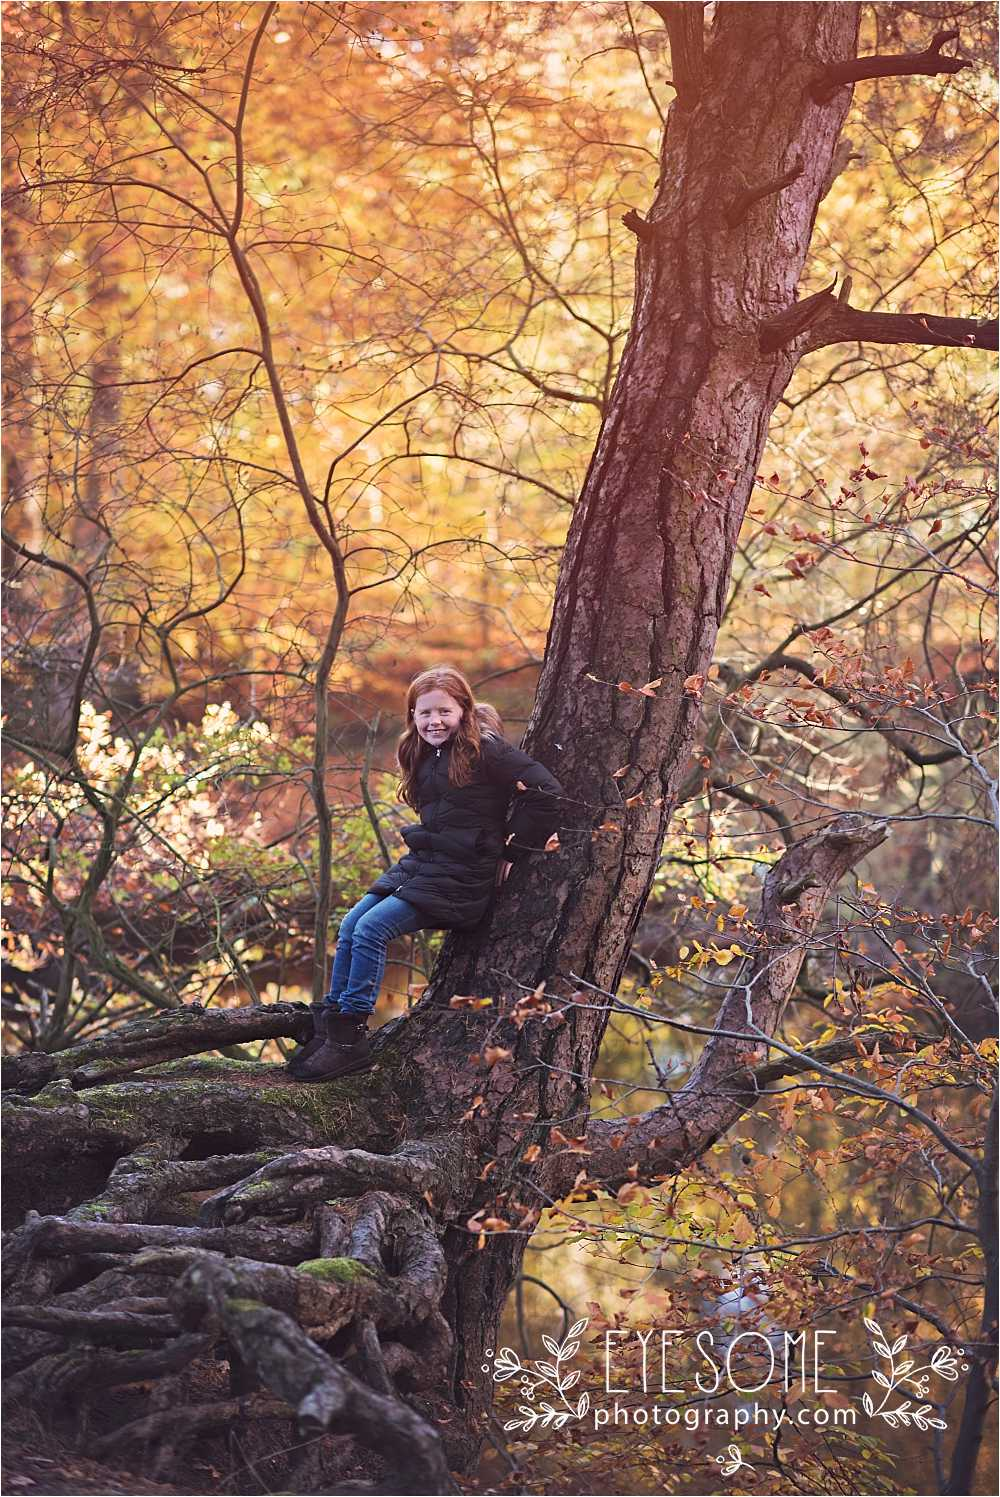 Daughter C finds the best tree in the world to climb on. Go girl.